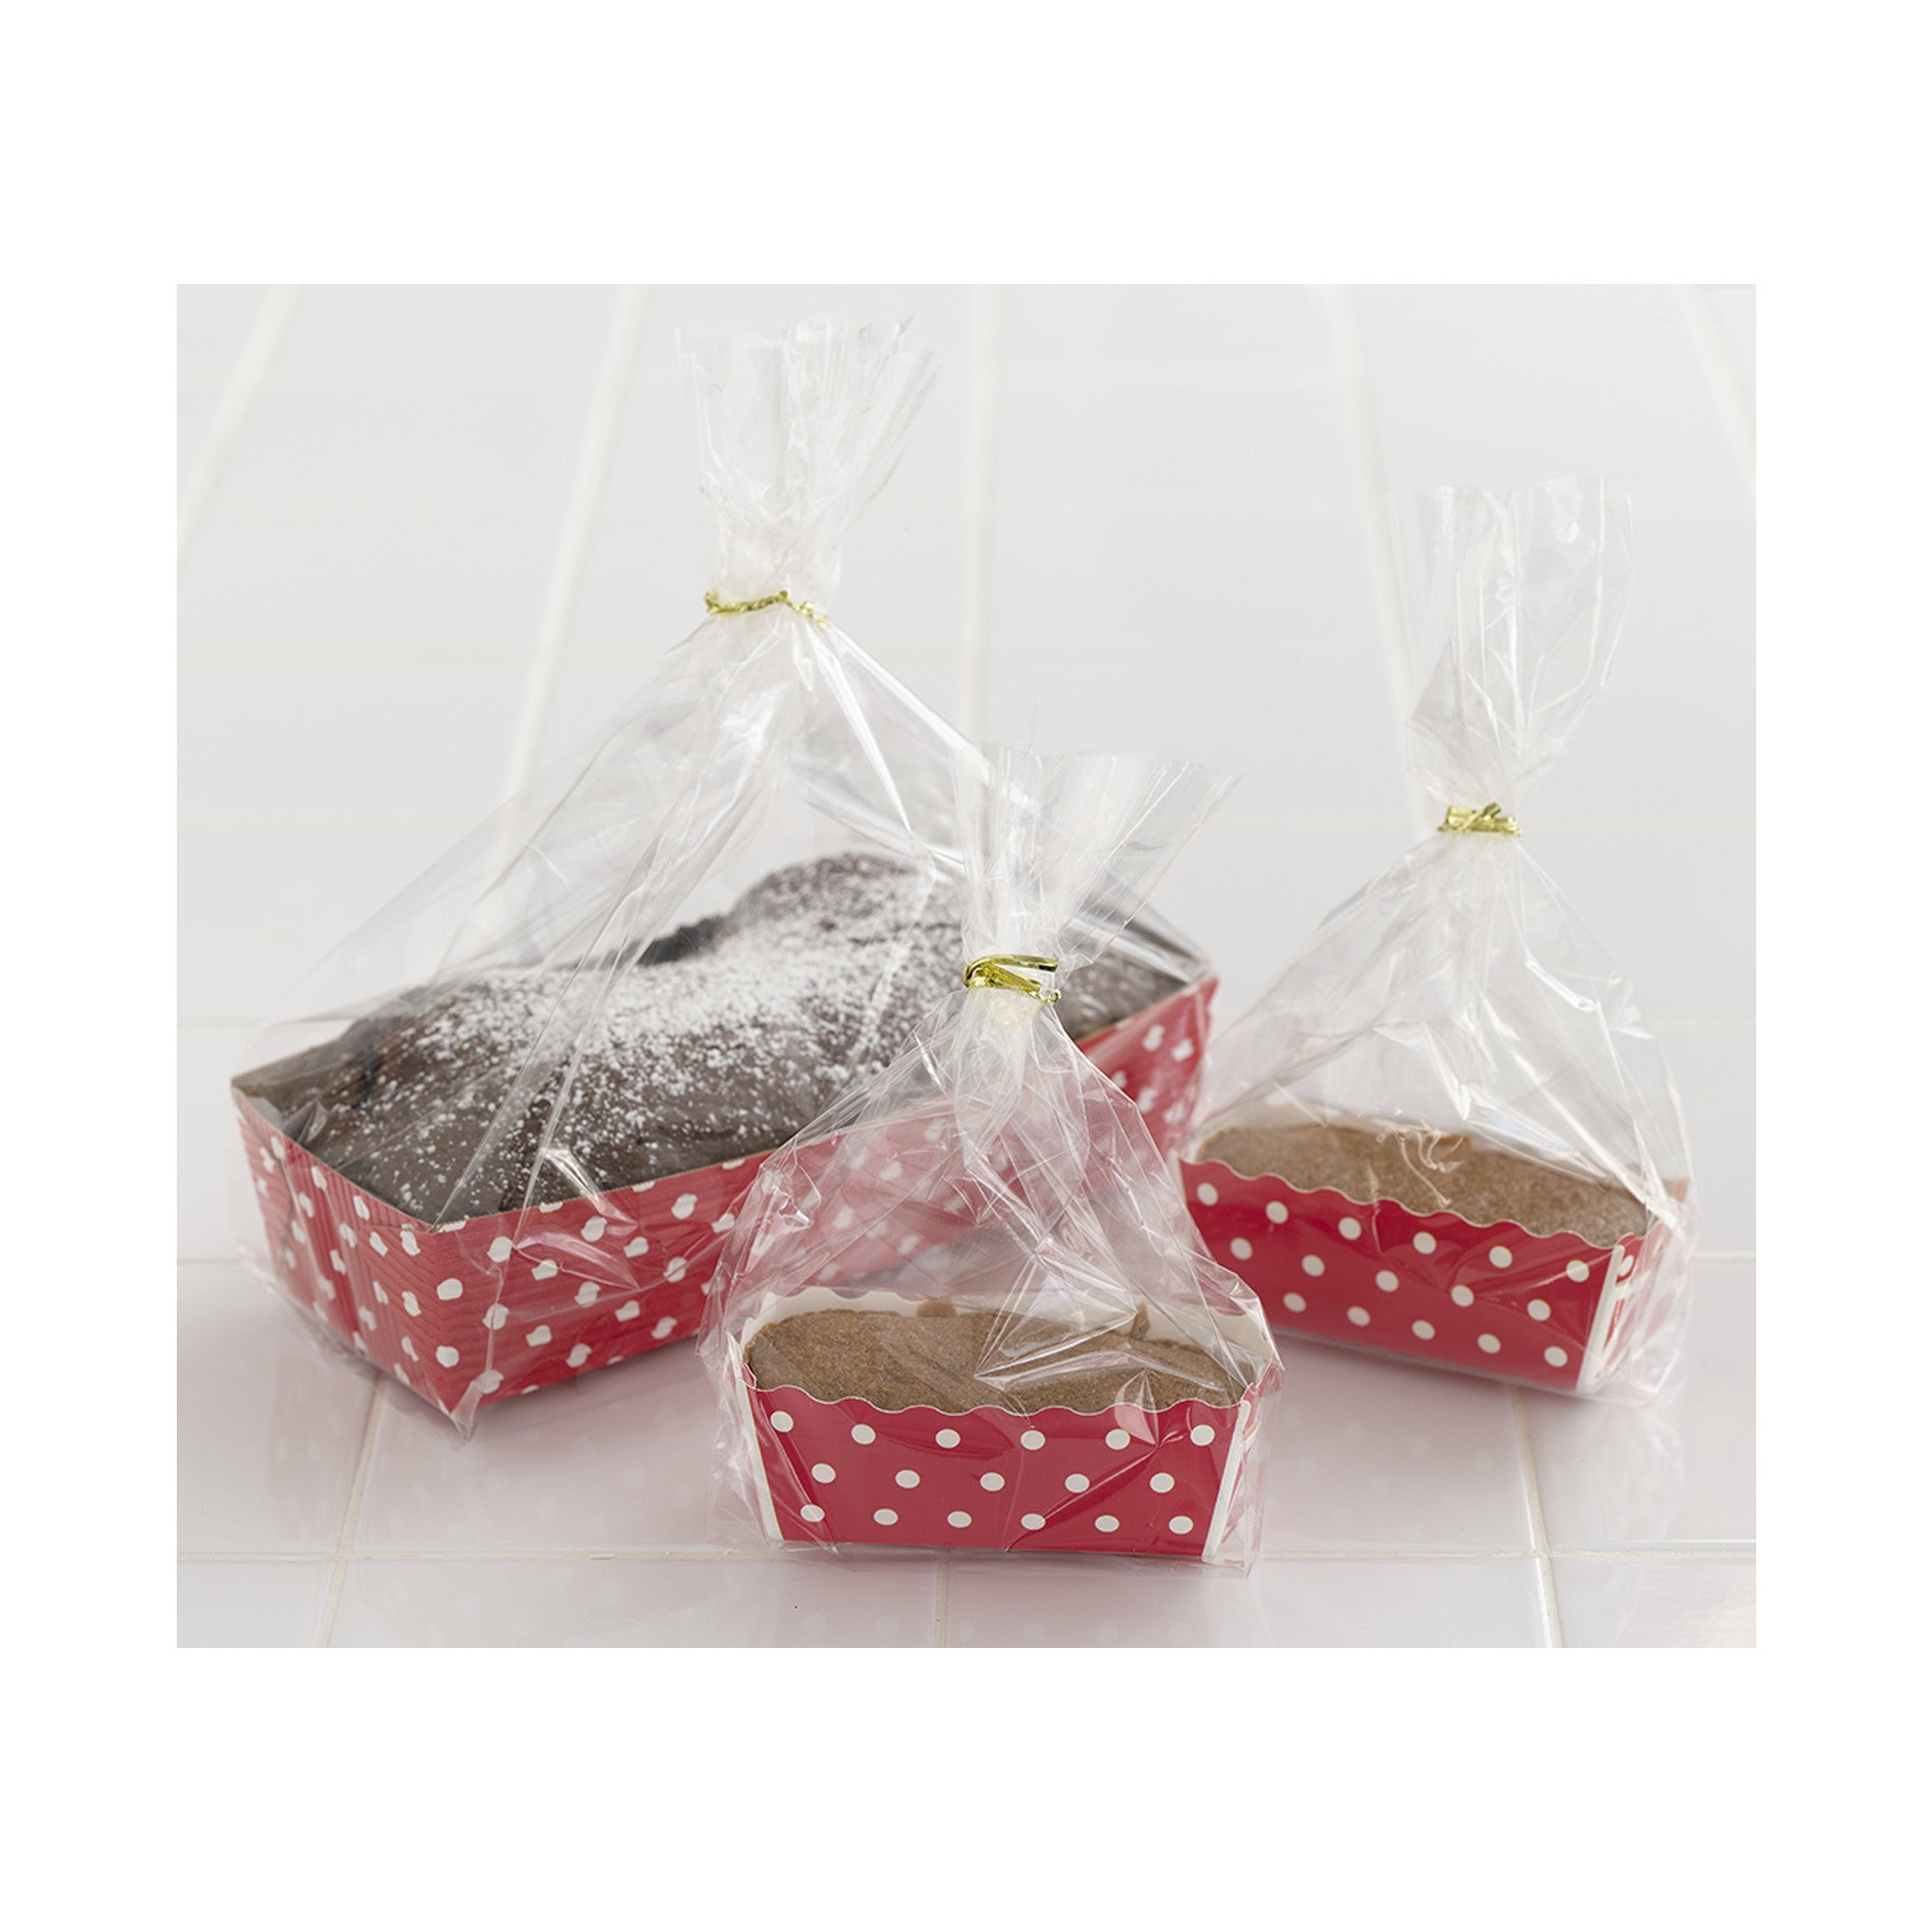 Bags + Twist Ties, Gift Bags for Cupcake Cup - Welcome Home Brands